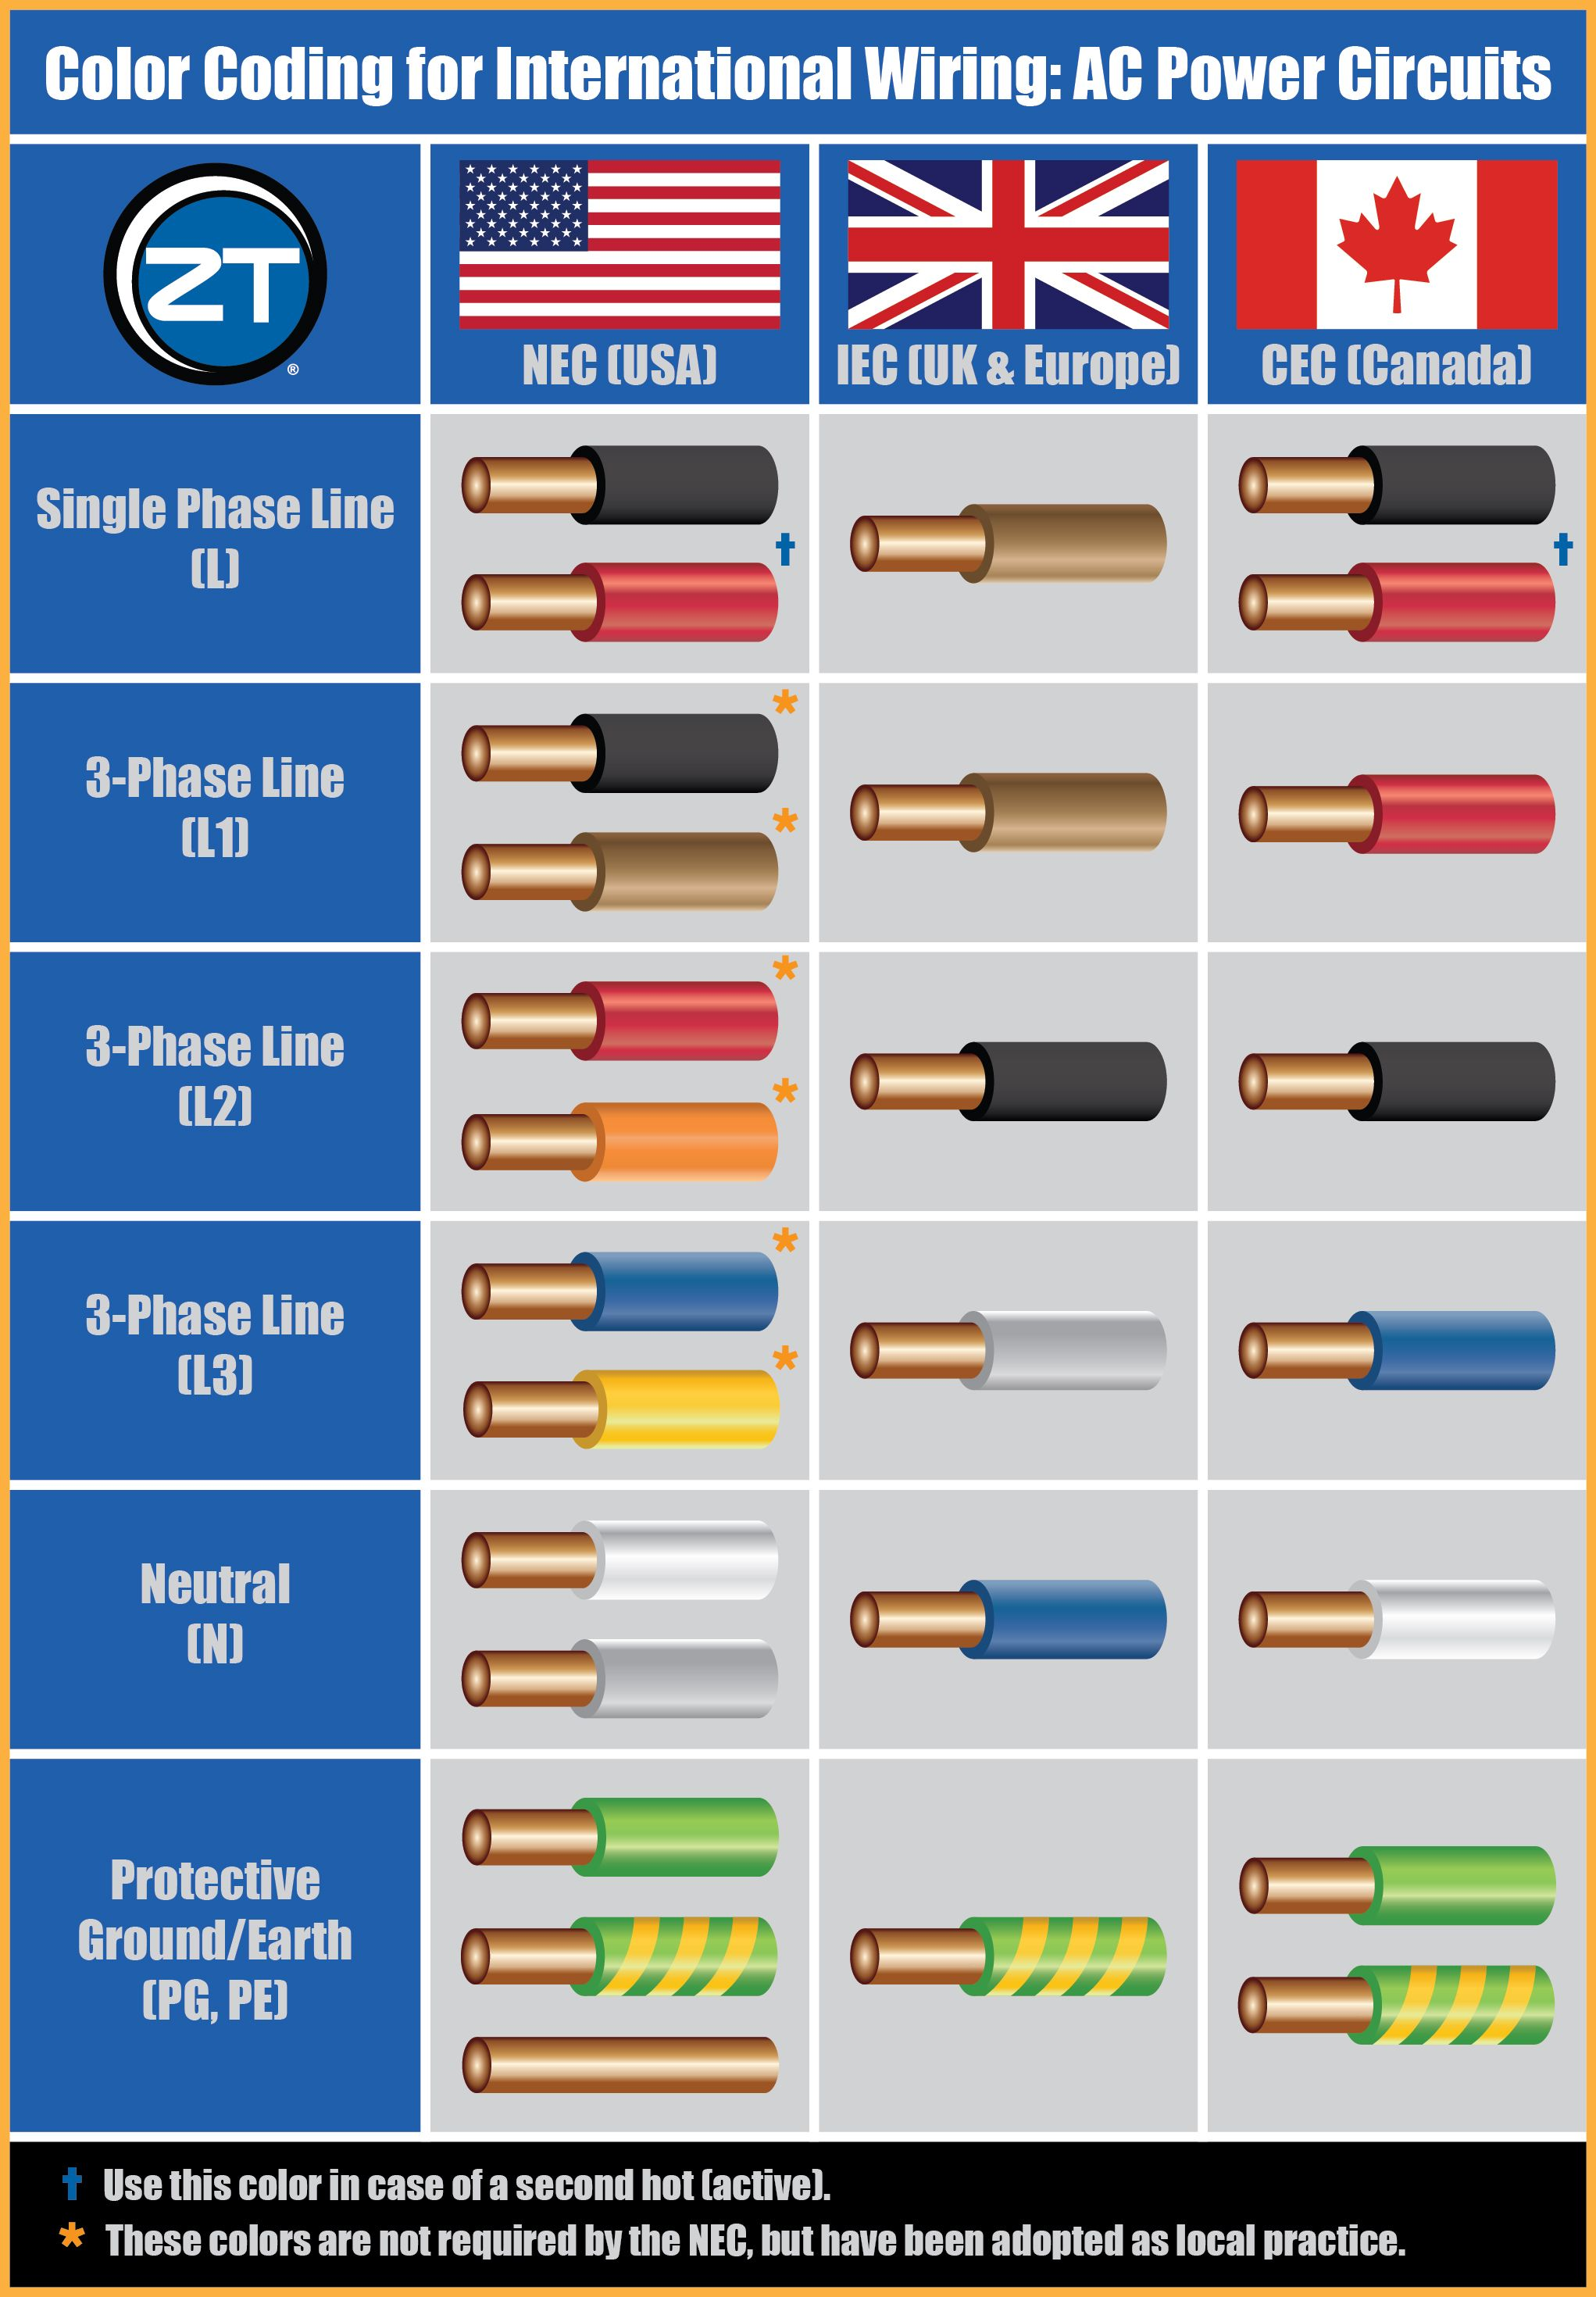 Guide To Color Coding For International Wiring